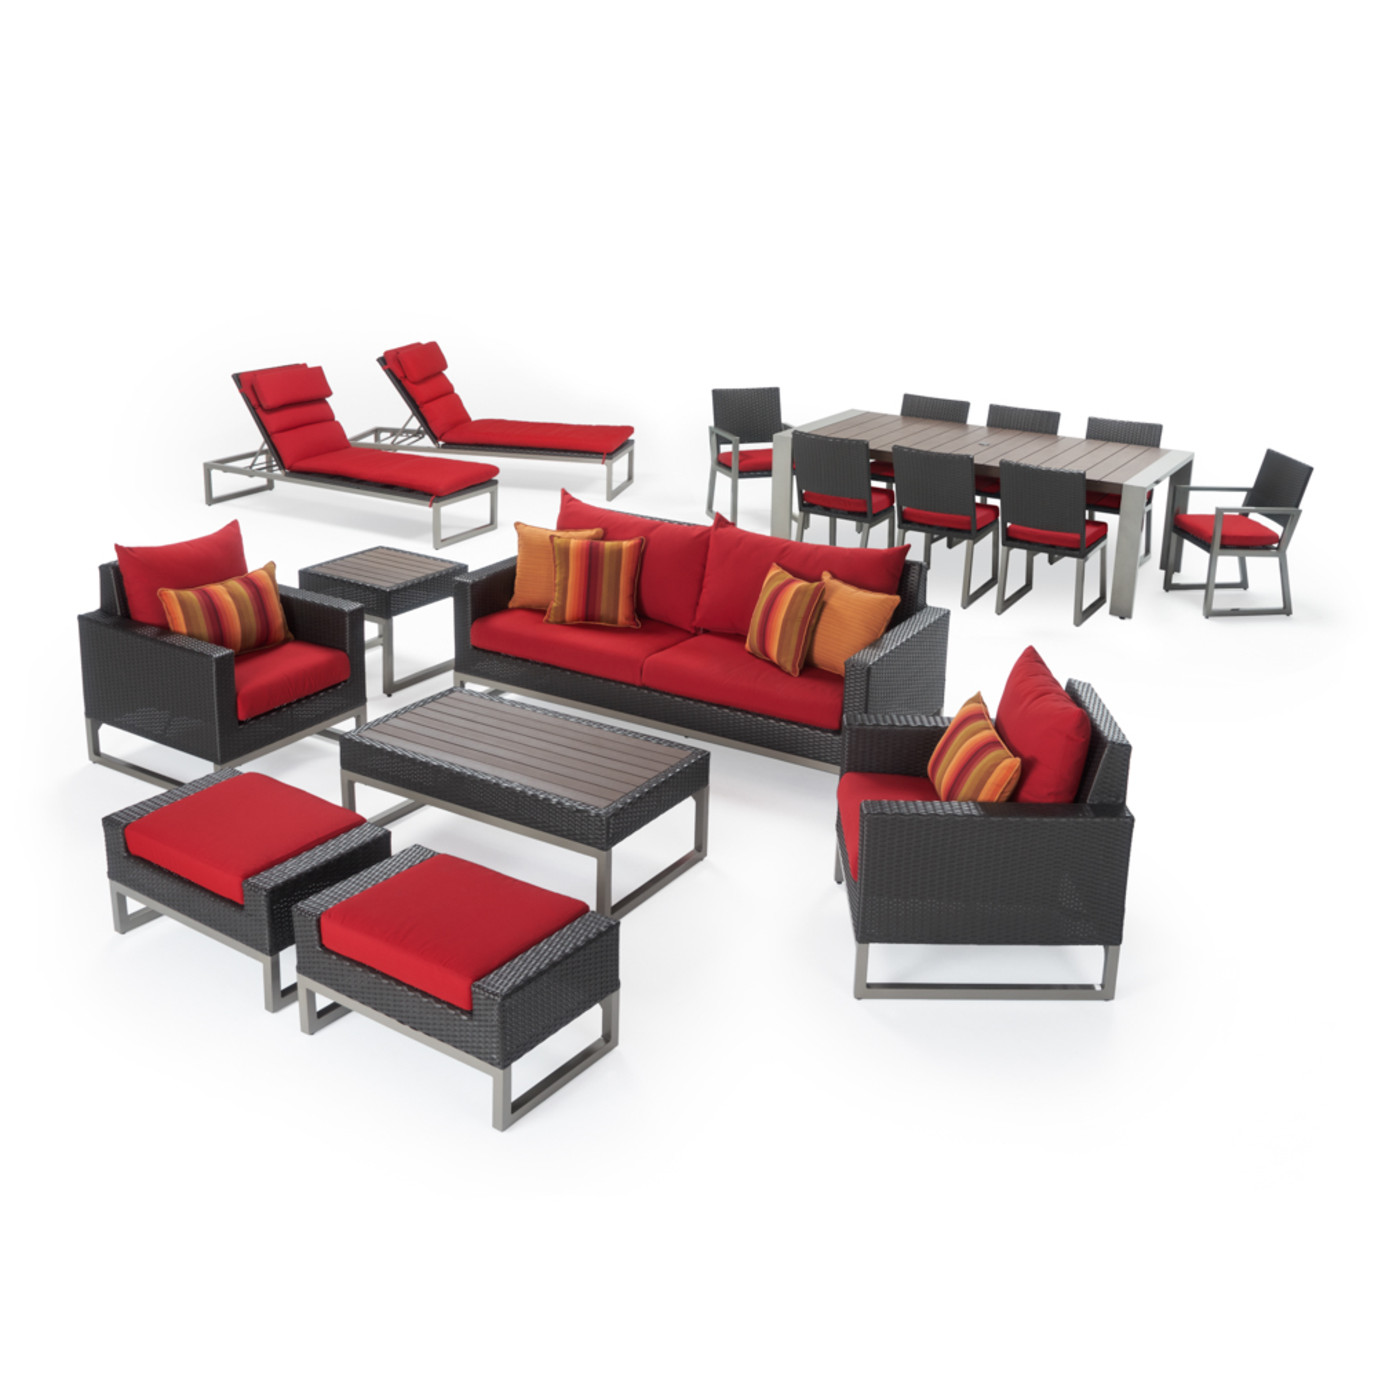 Milo™ Espresso 18 Piece Estate Set - Sunset Red